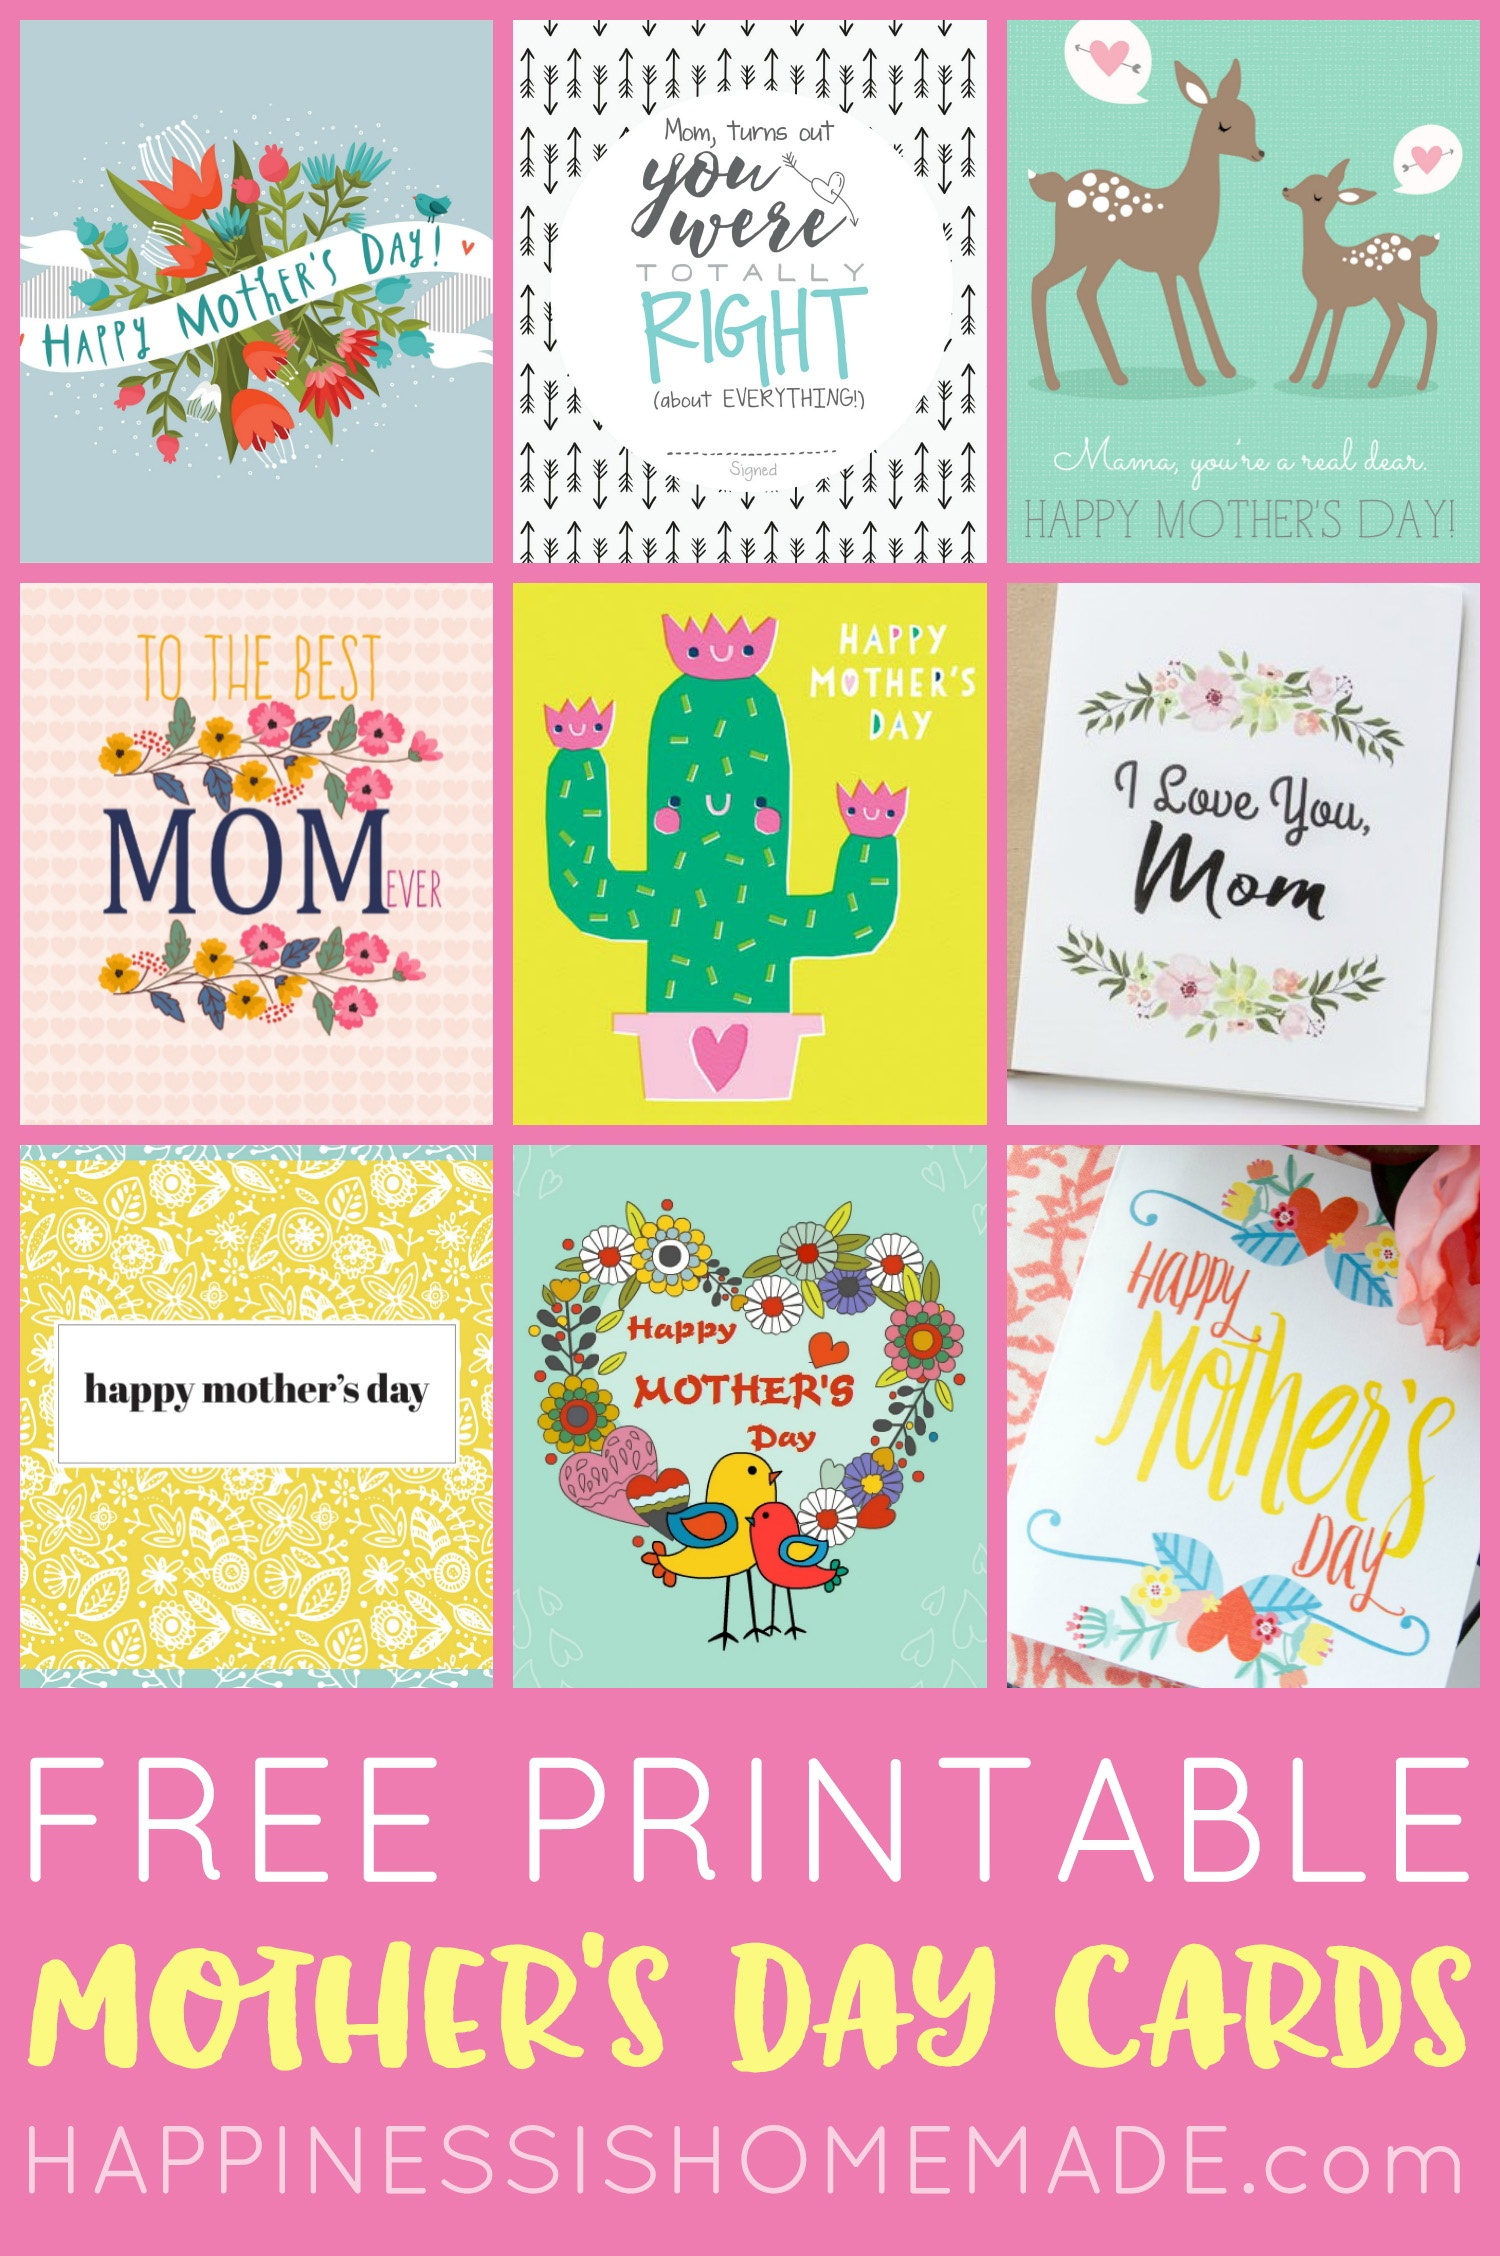 Free Printable Mother's Day Cards - Happiness Is Homemade - Free Printable Cards